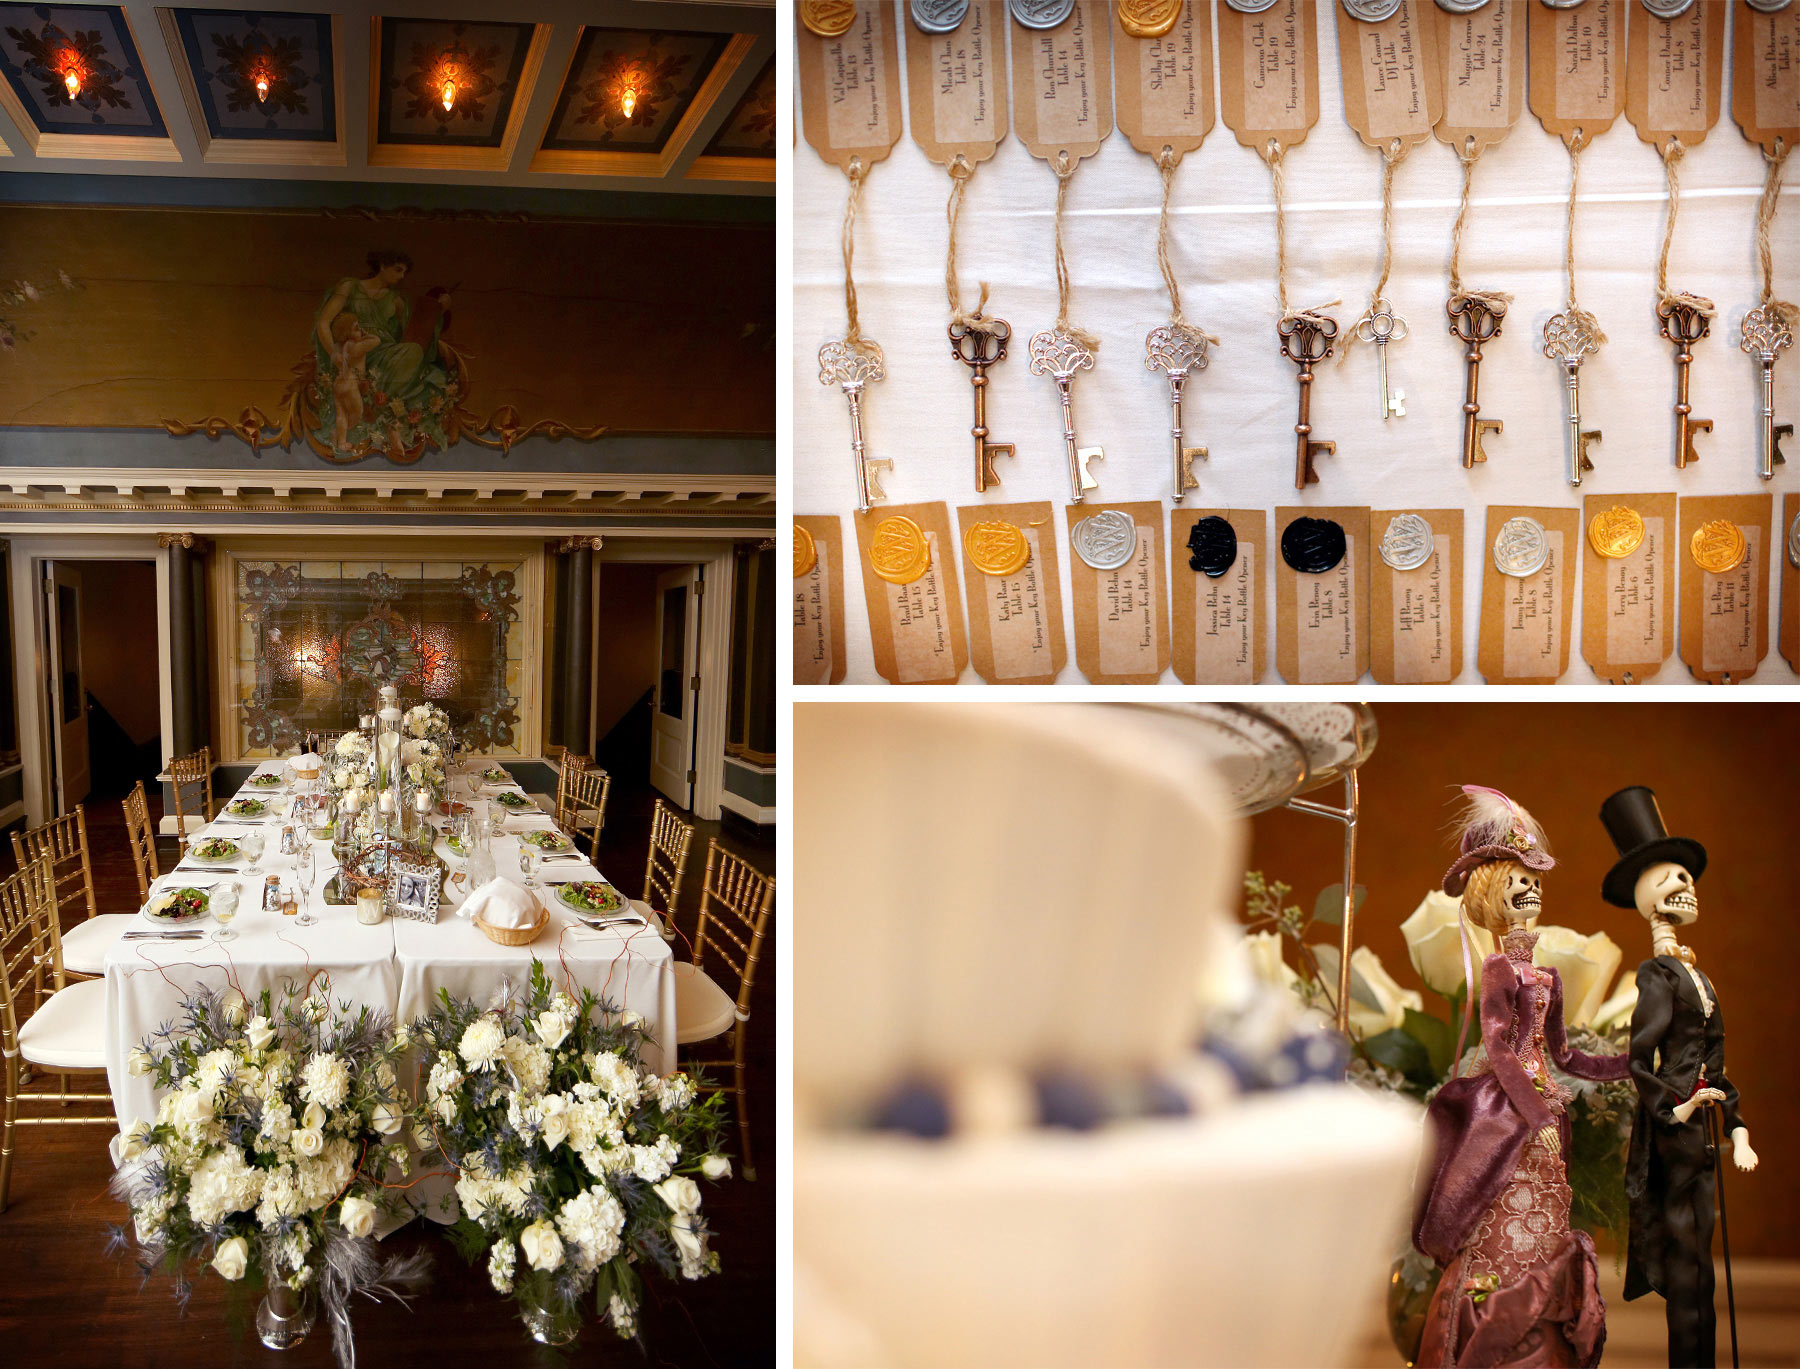 11-Minneapolis-Minnesota-Wedding-Photography-by-Vick-Photography-Semple-Mansion-Reception-Decor-Ariel-and-Jared.jpg